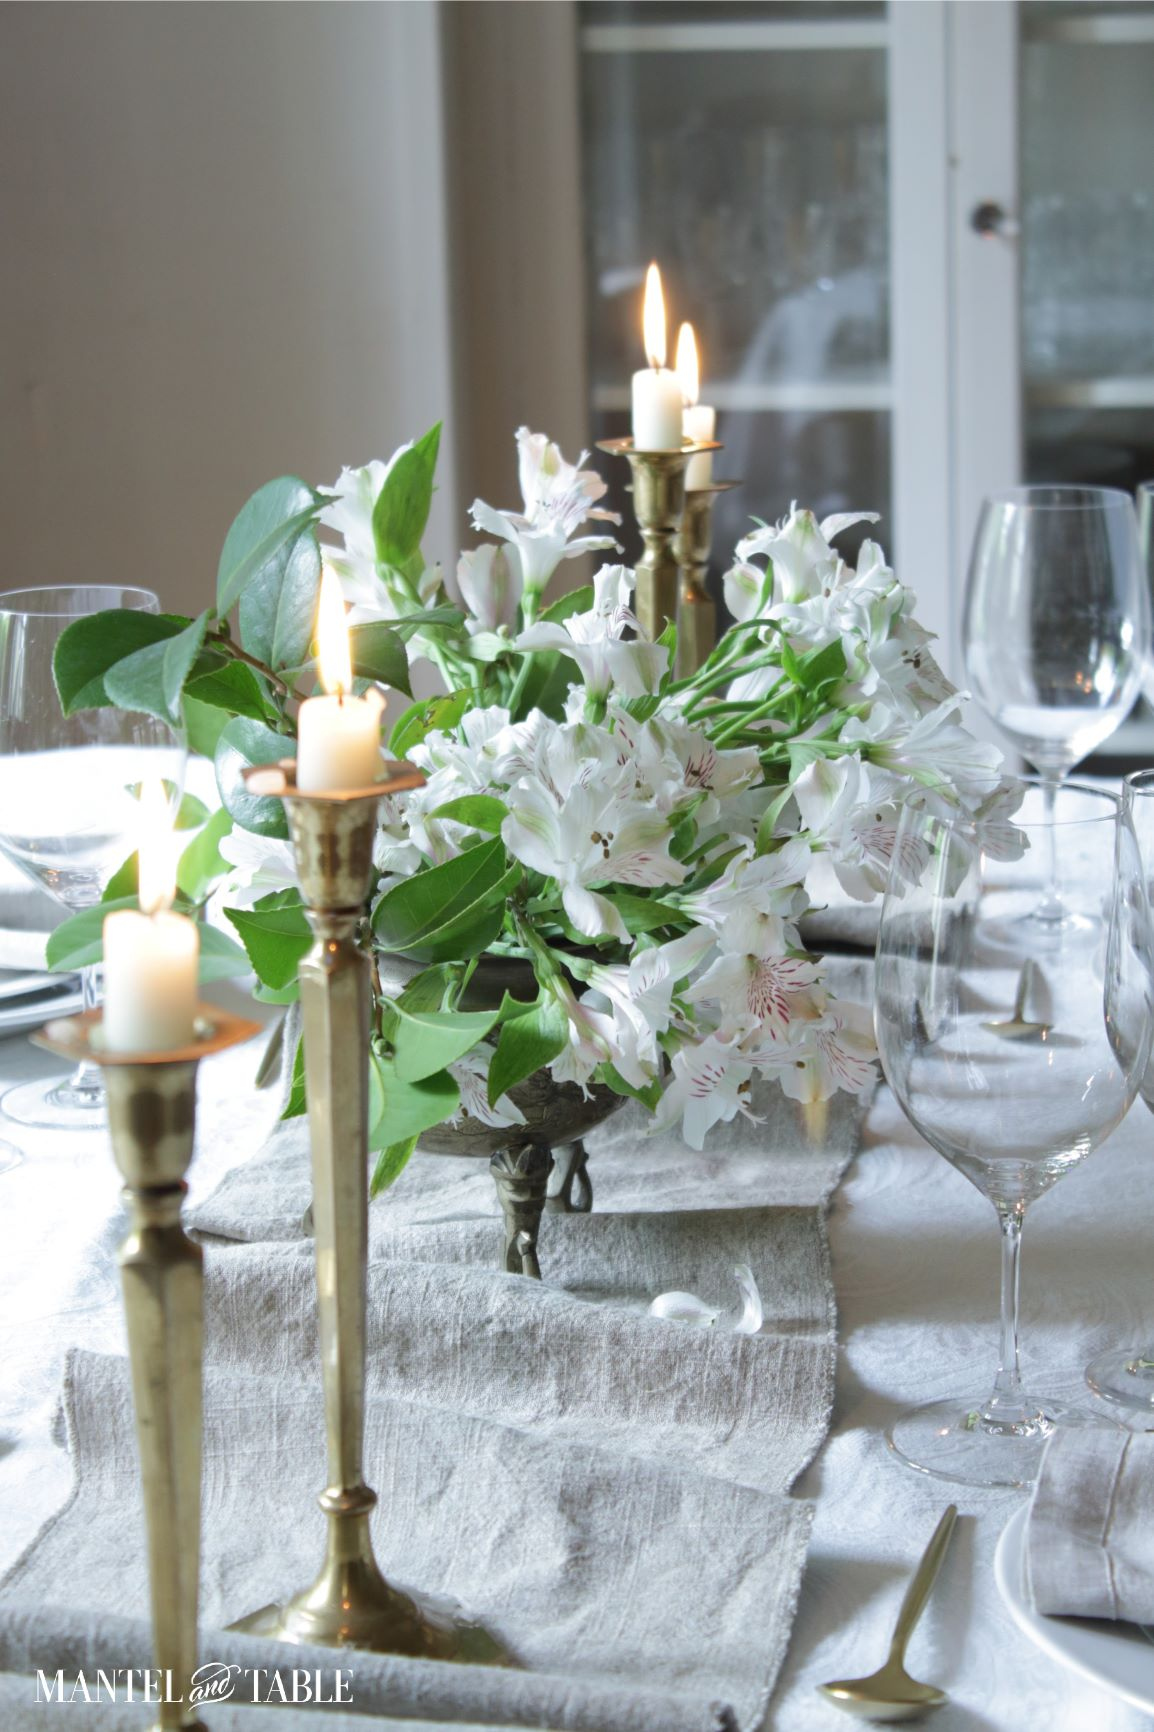 Linen table runner on table with white flowers, candles